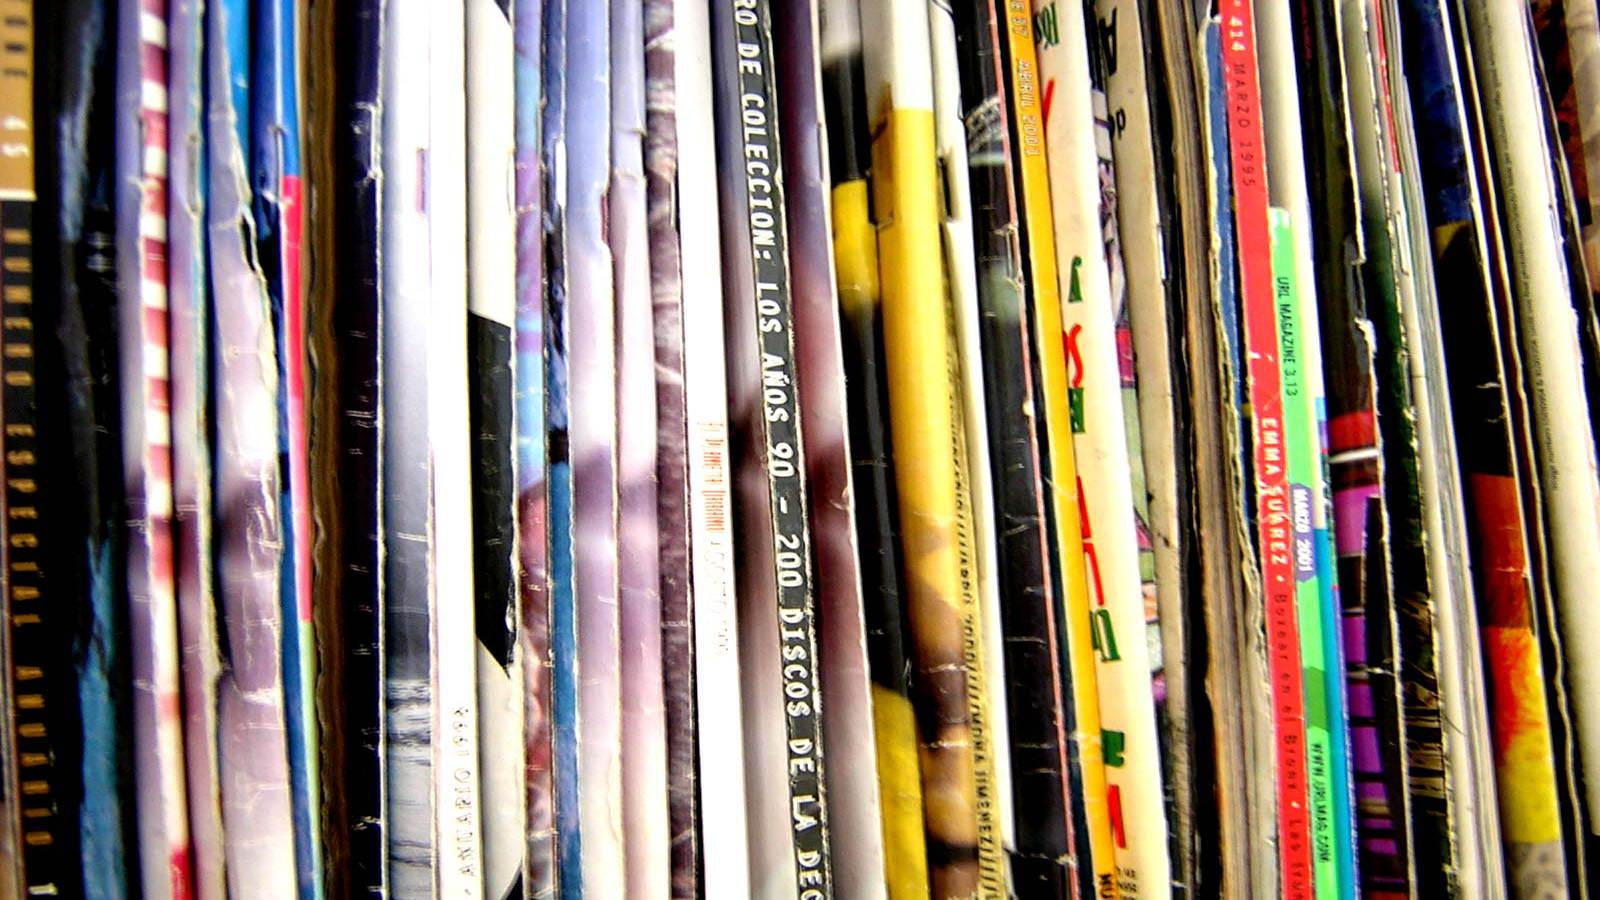 Shelf of magazines